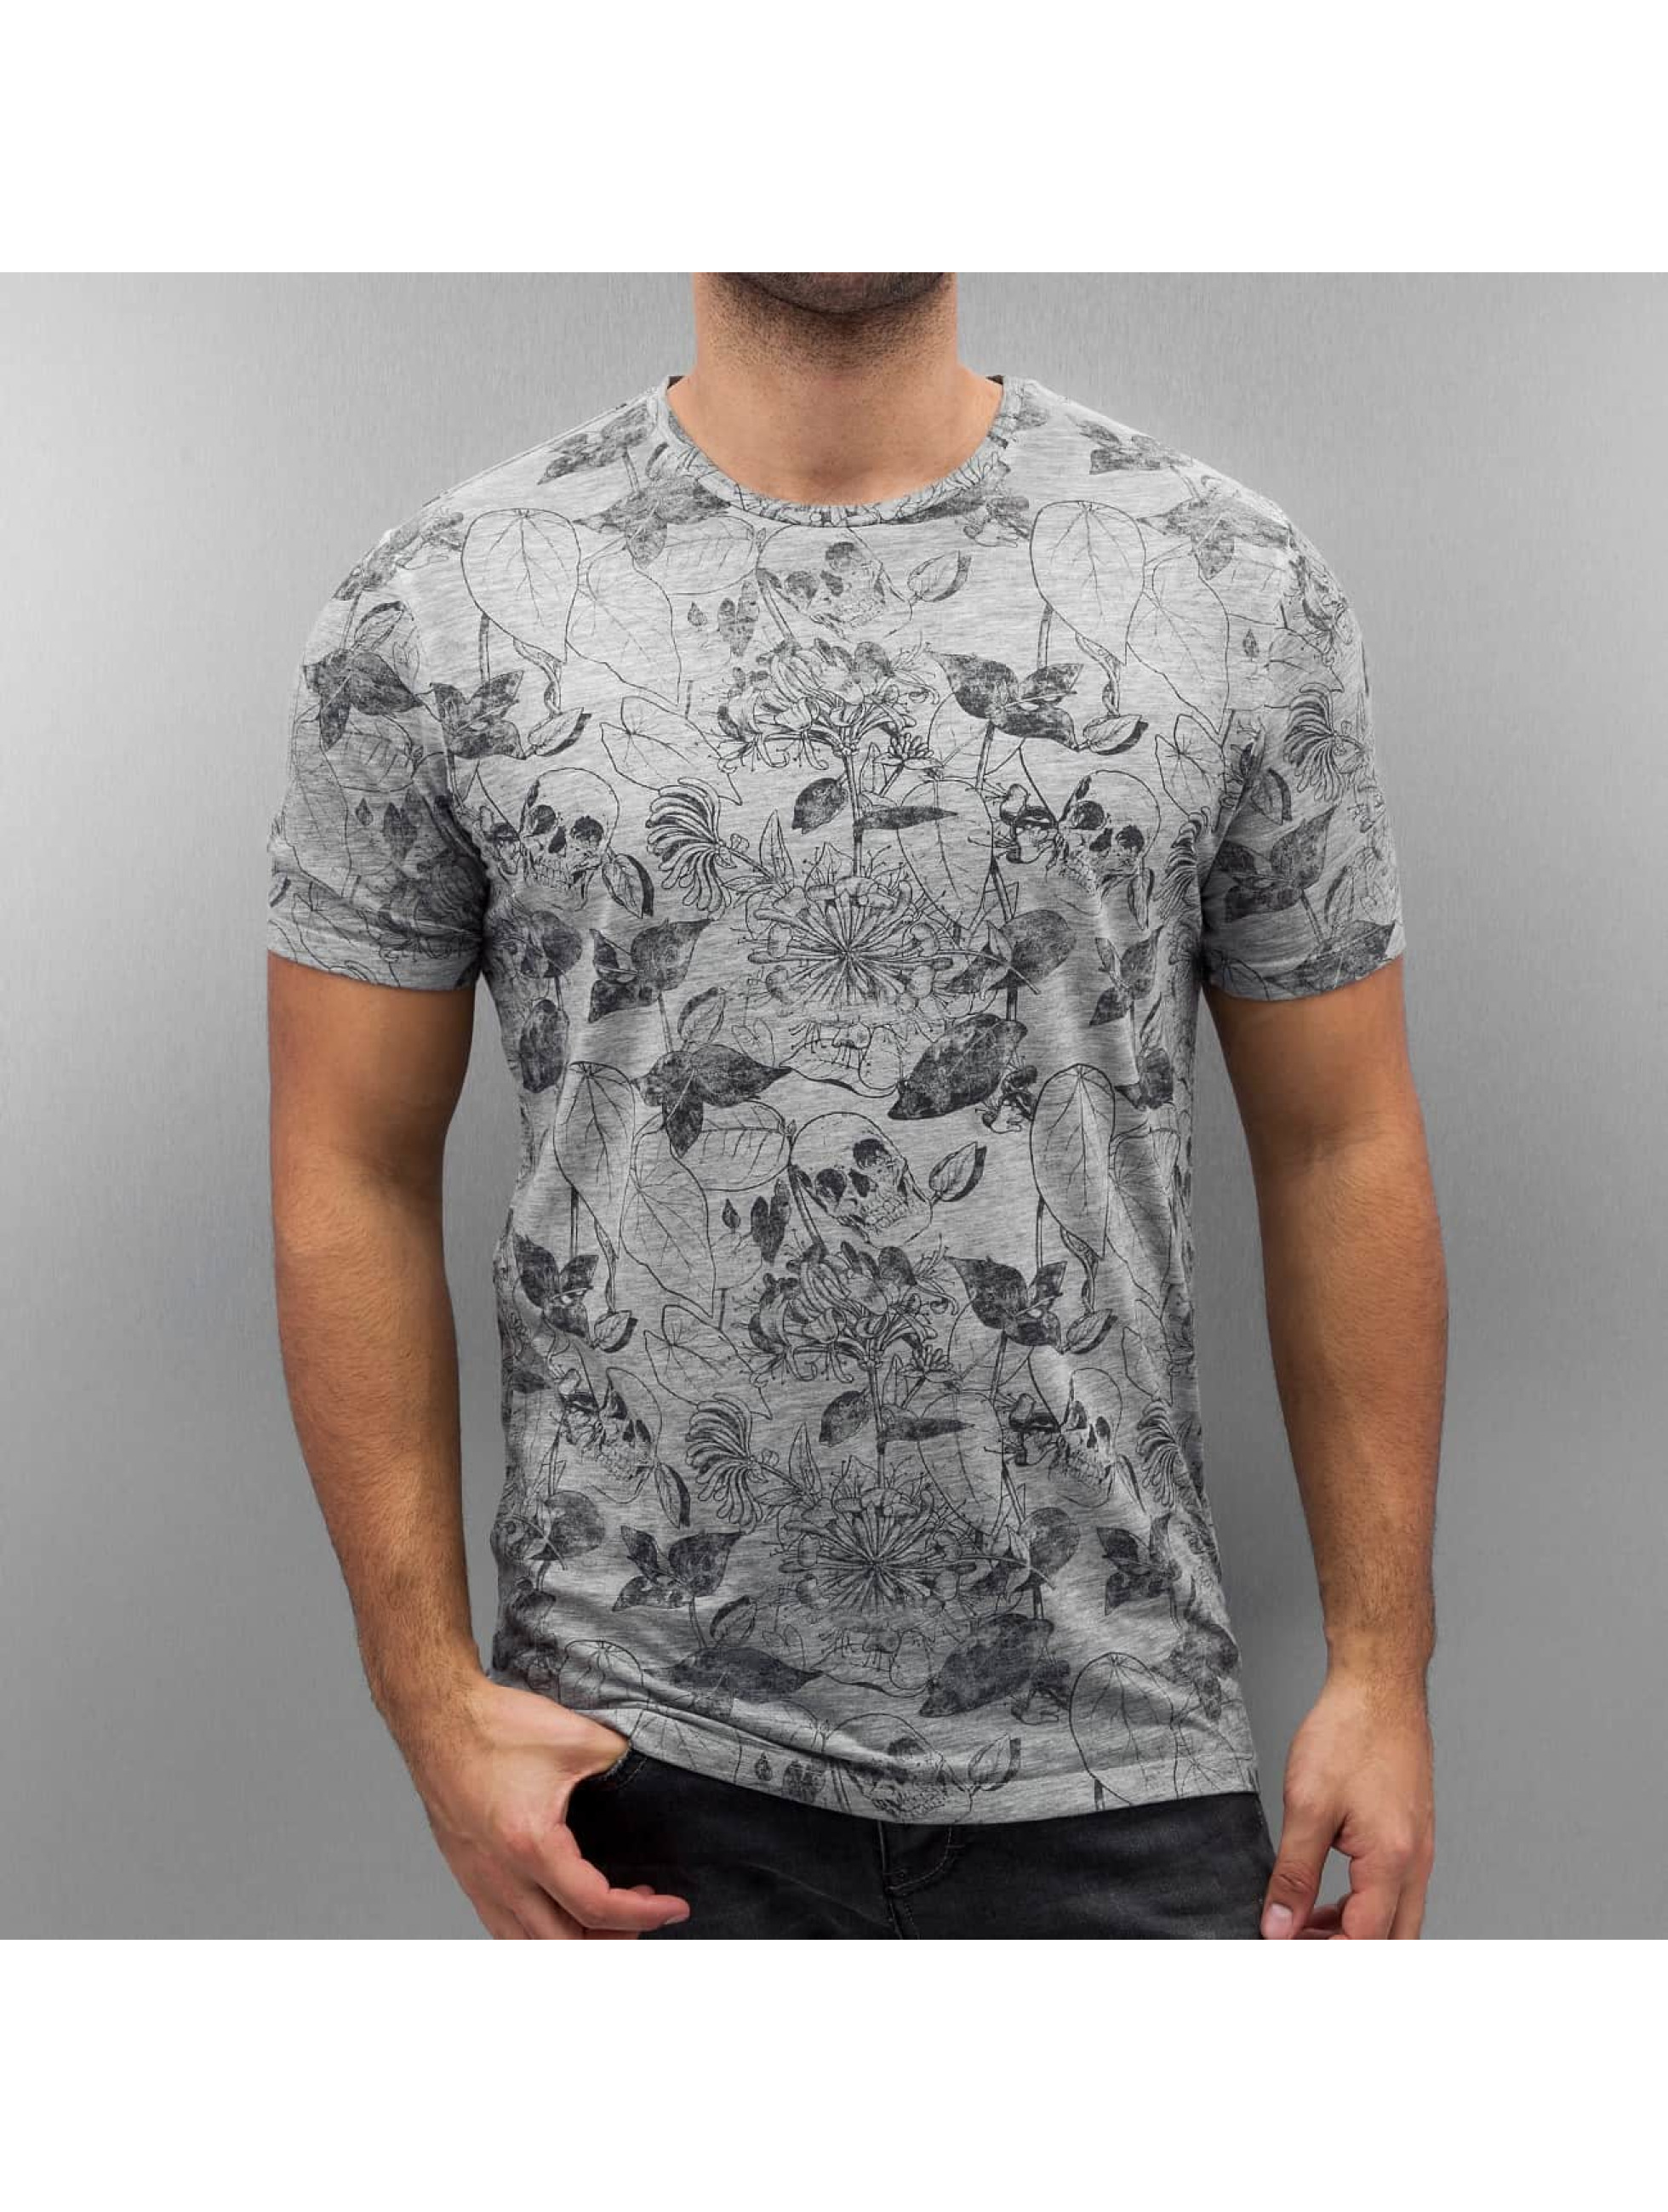 Jack & Jones T-shirt jjorDany grigio